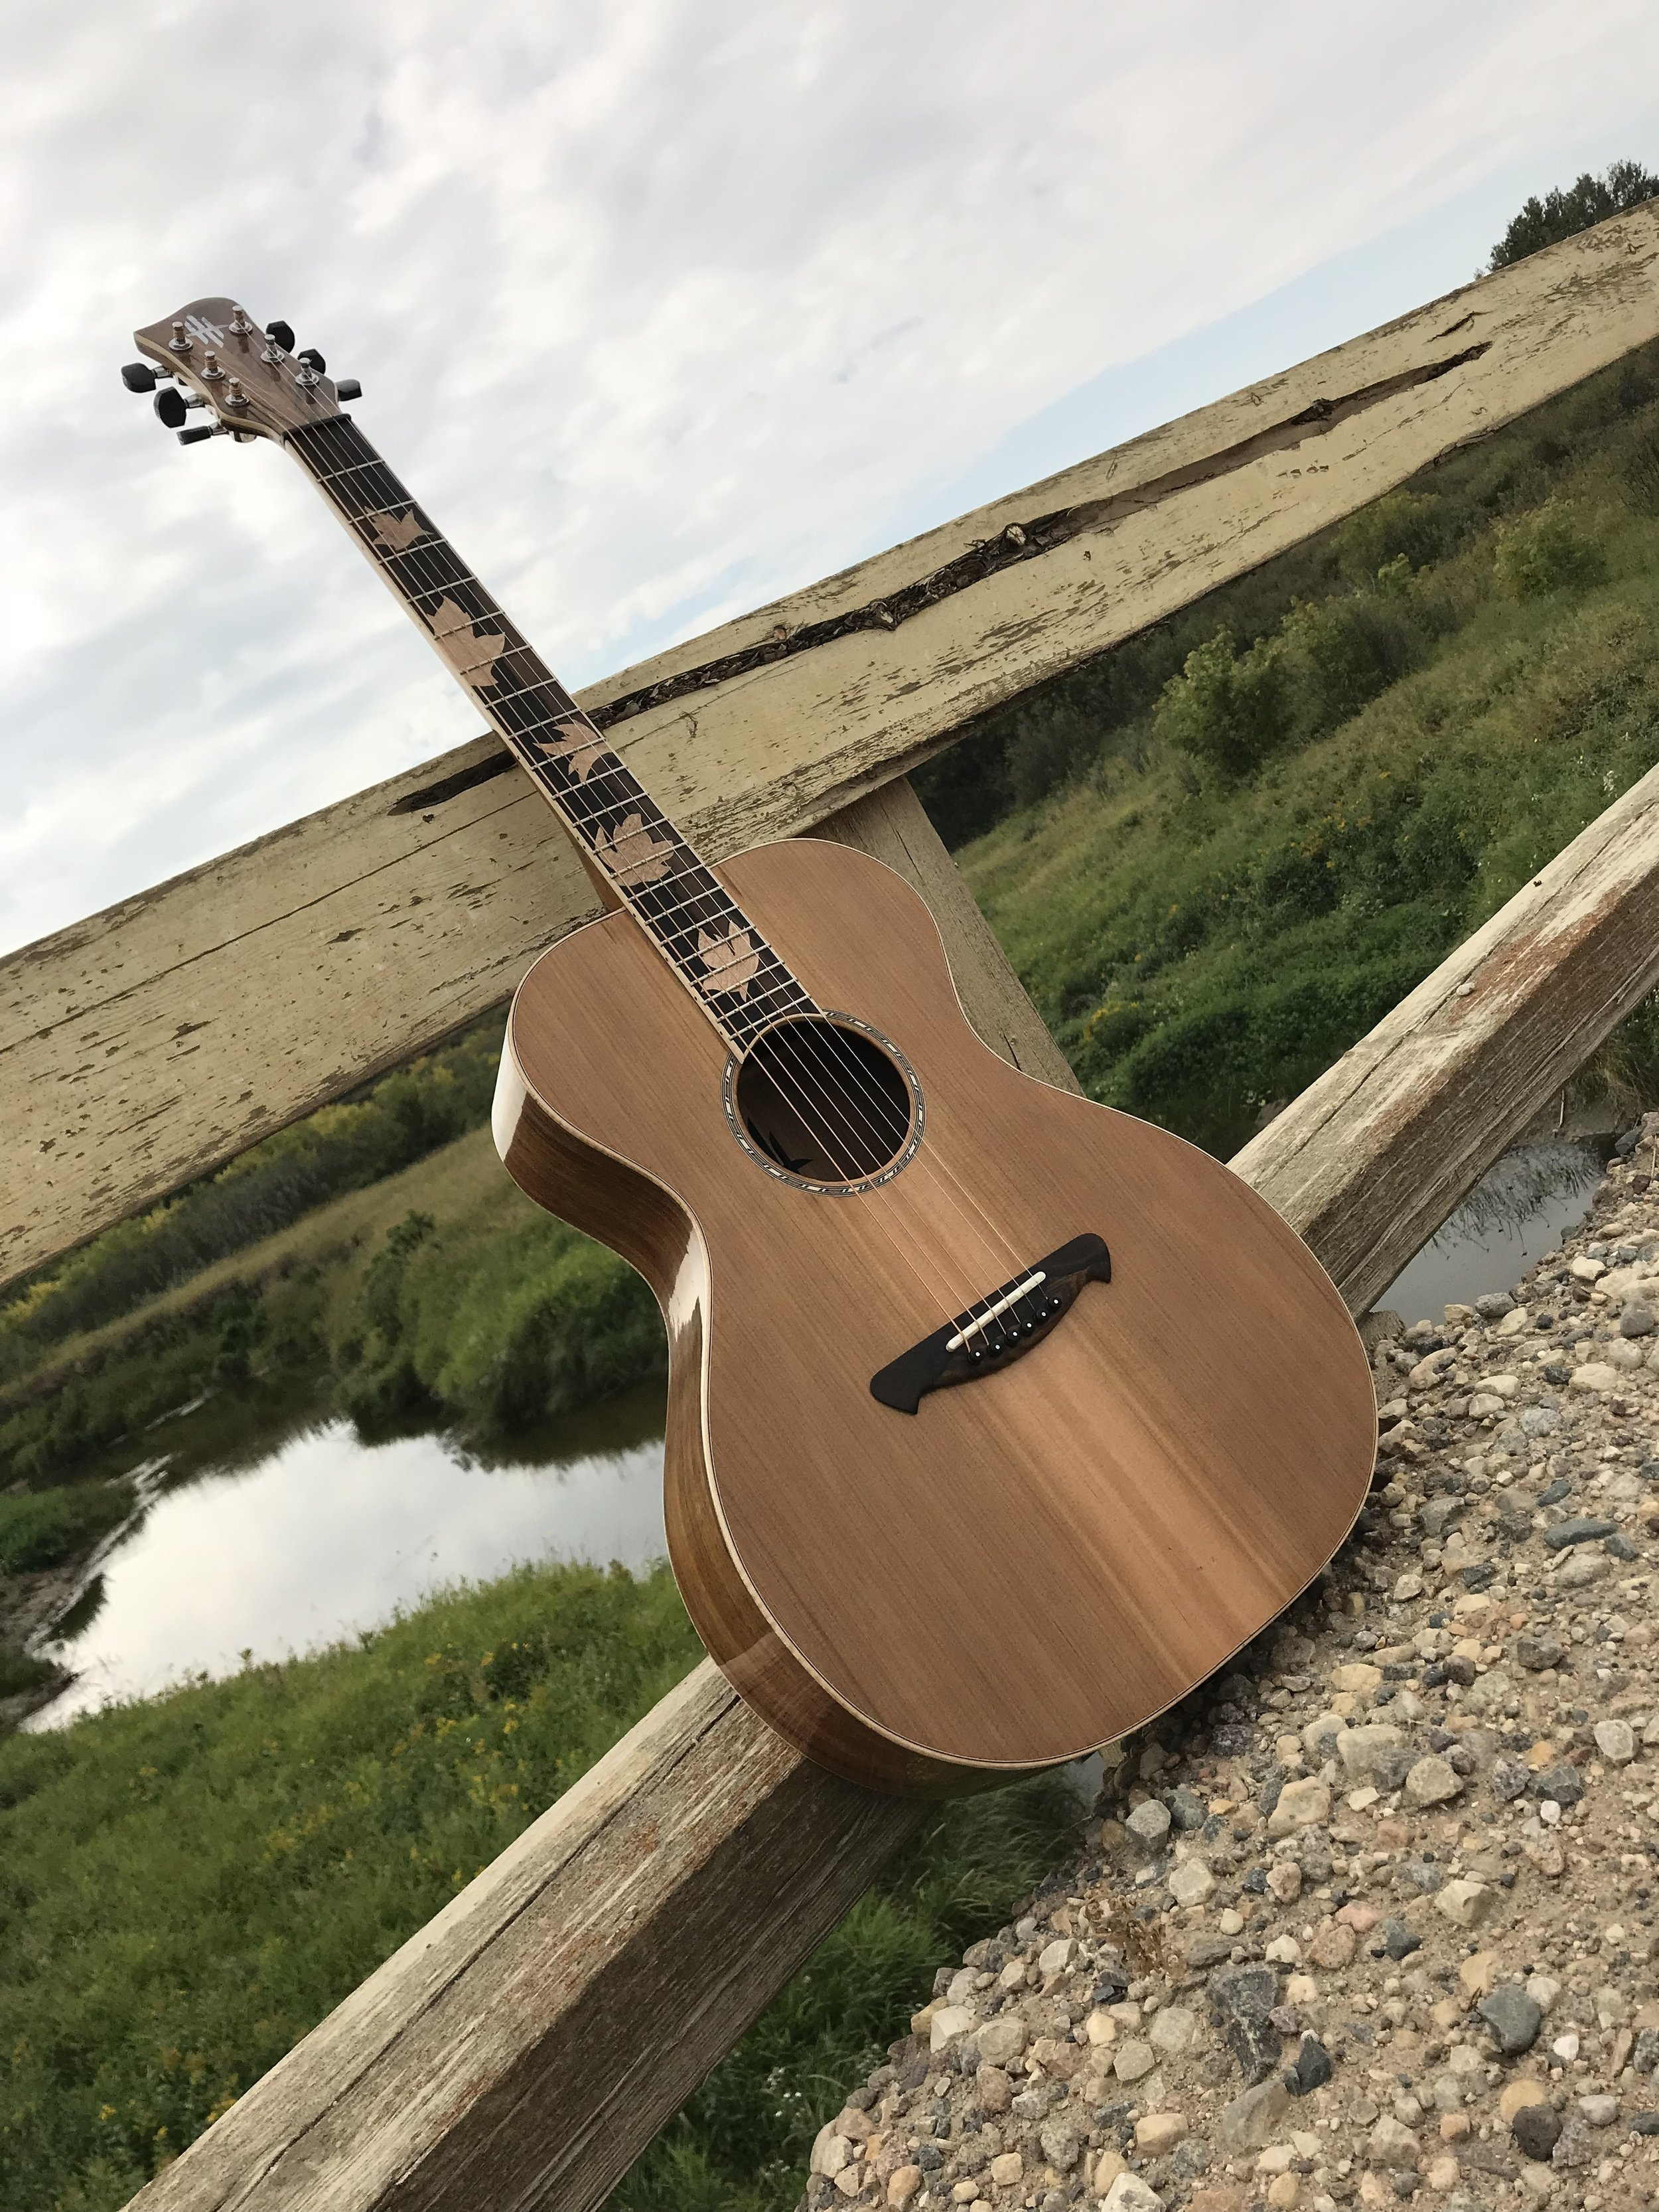 """-O Scale Acoustic Guitar  -Tazmanian Blackwood Back, Sides and Neck  -Western Red Cedar Top  -Zircoti Bridge and Fretboard with Flamed Maple Inlays  -English Walnut Head Veneer with Pearl Inlay  -Flamed Maple Bindings  -25.5"""" Scale  -Tusq Nut and Saddle"""